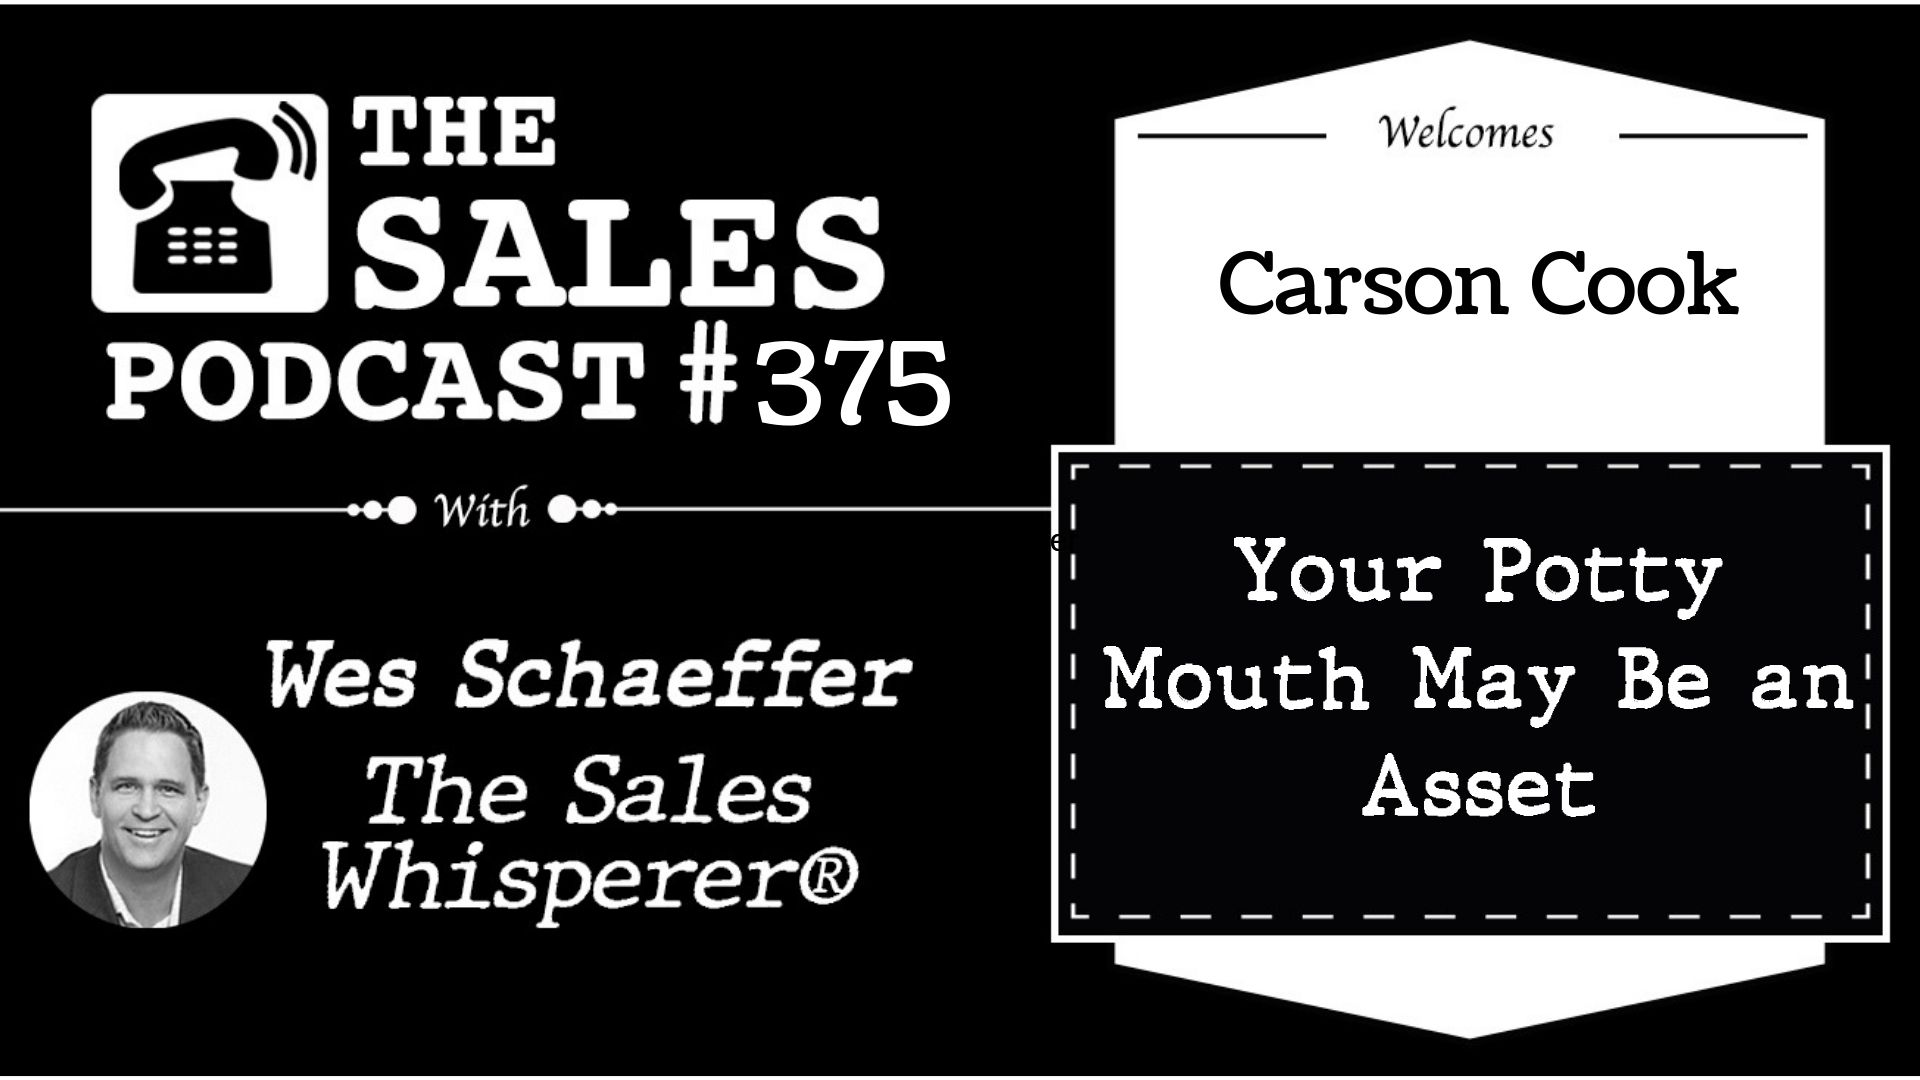 The No Shit Sales Journal Sales Creator, Carson Cook